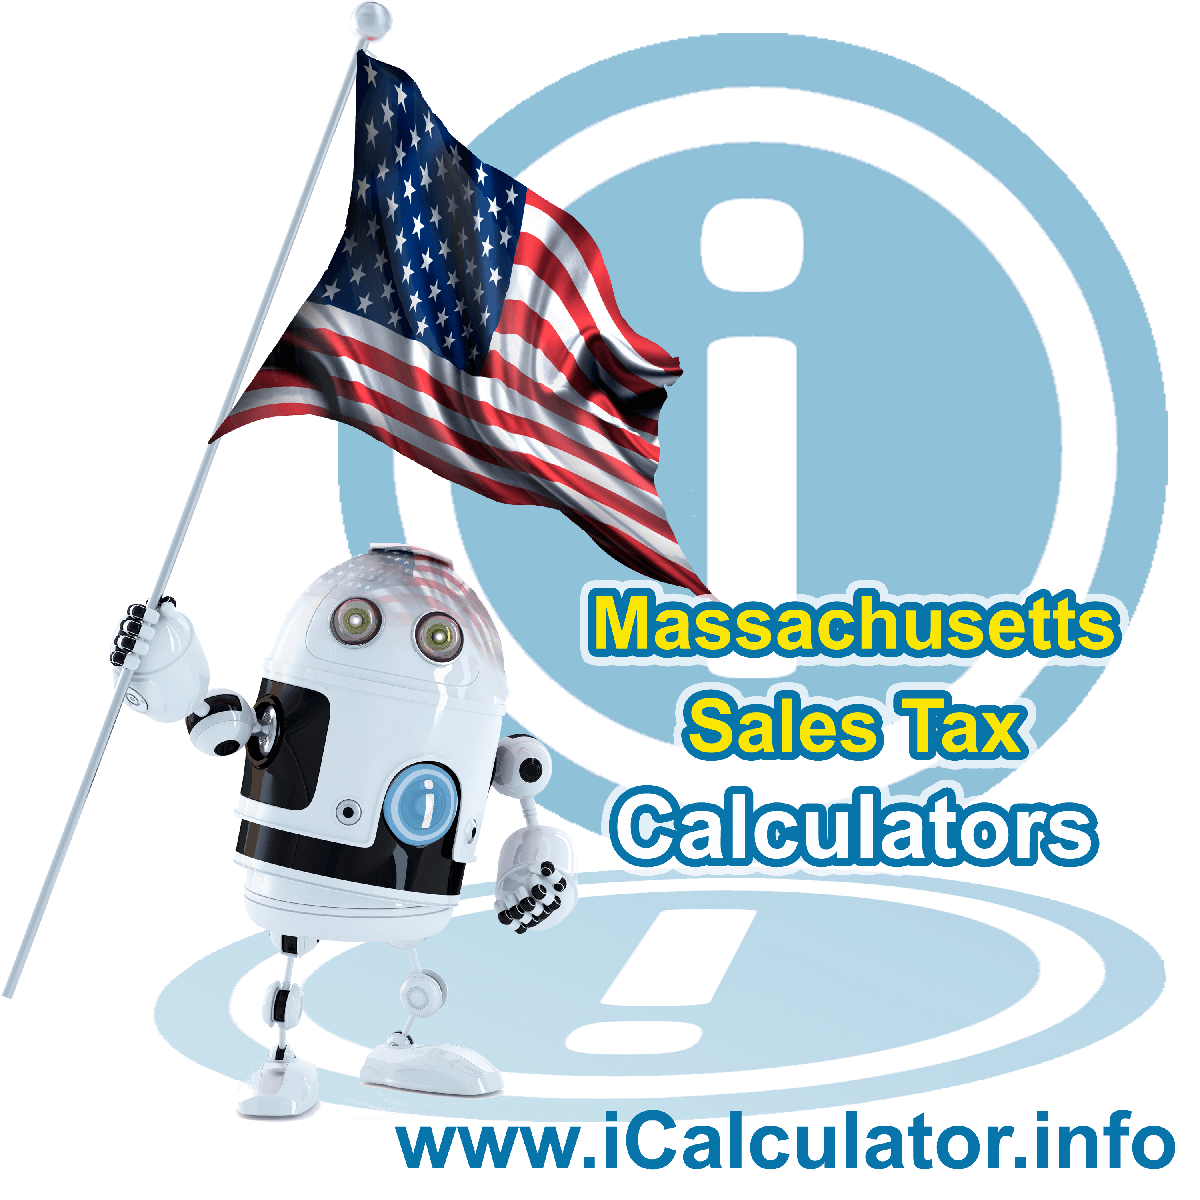 US Sales Tax Calculator: This image illustrates a calculator robot calculating sales tax in the United States manually using the United States Sales Tax Formula. You can use this information to calculate Sales Tax manually or use the United States Sales Tax Calculator to calculate sales tax online.